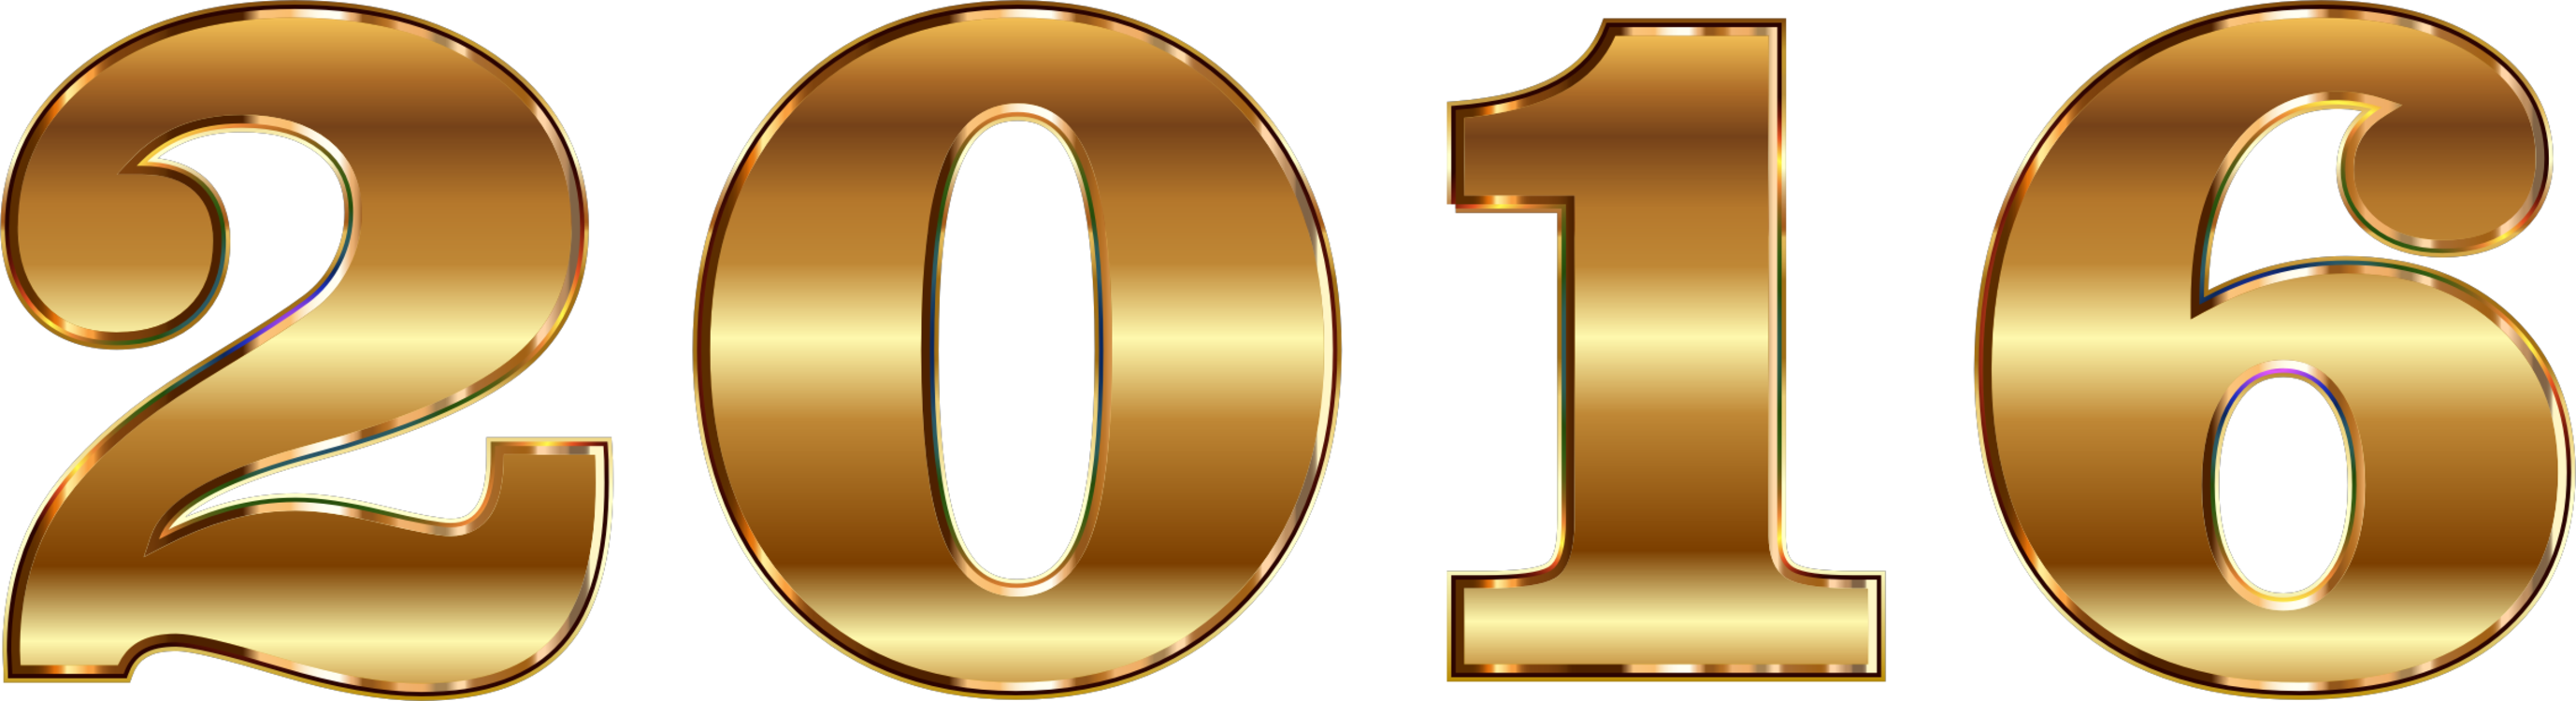 2016 clipart gold. Text symbol png royalty